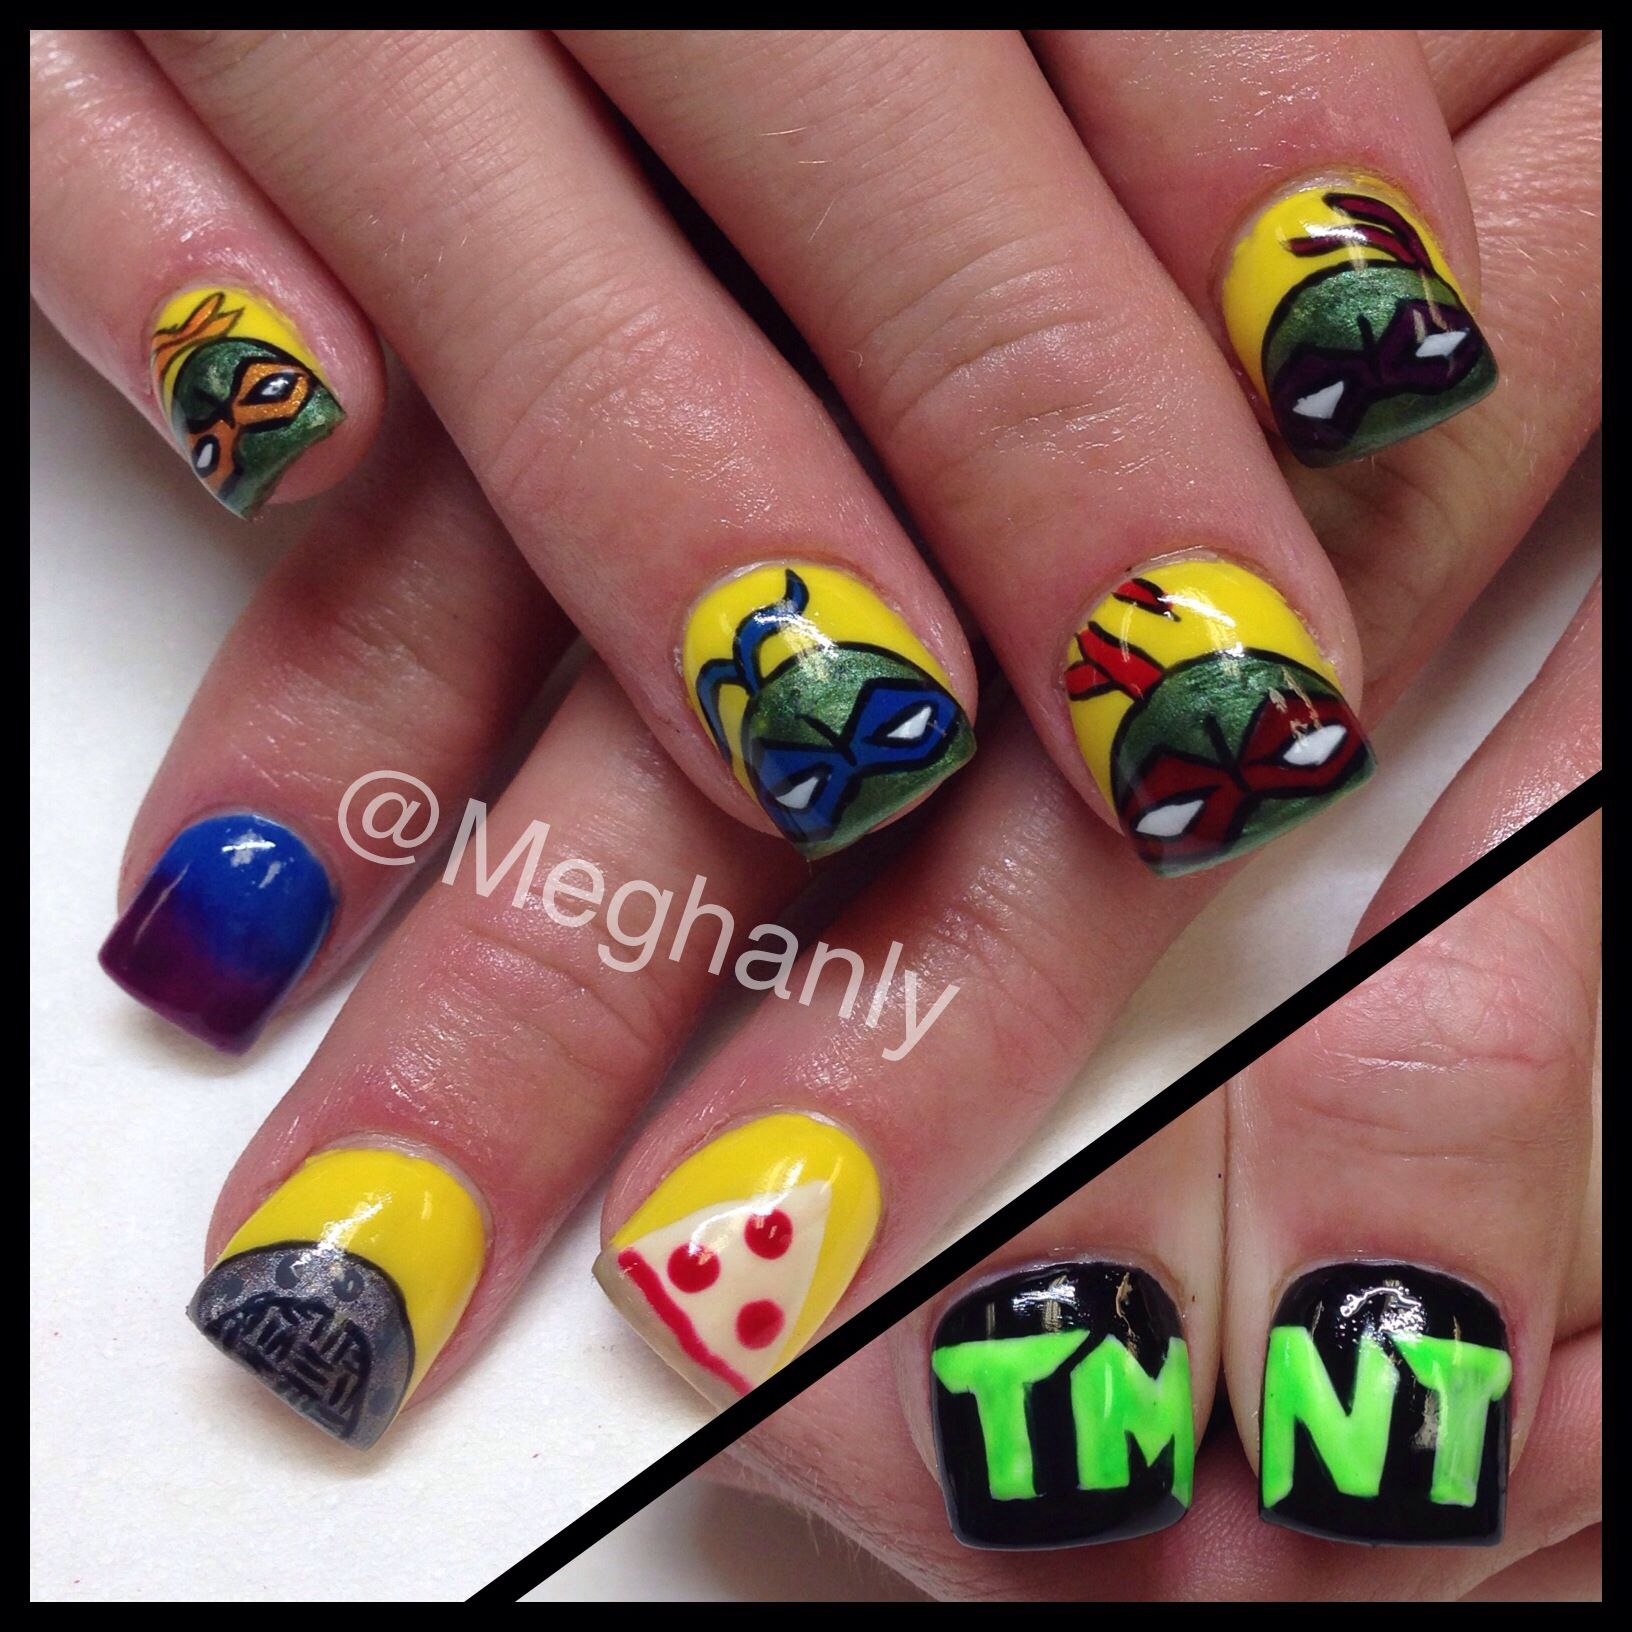 Teenage mutant ninja turtle nails nail art TMNT | Nails by me ...